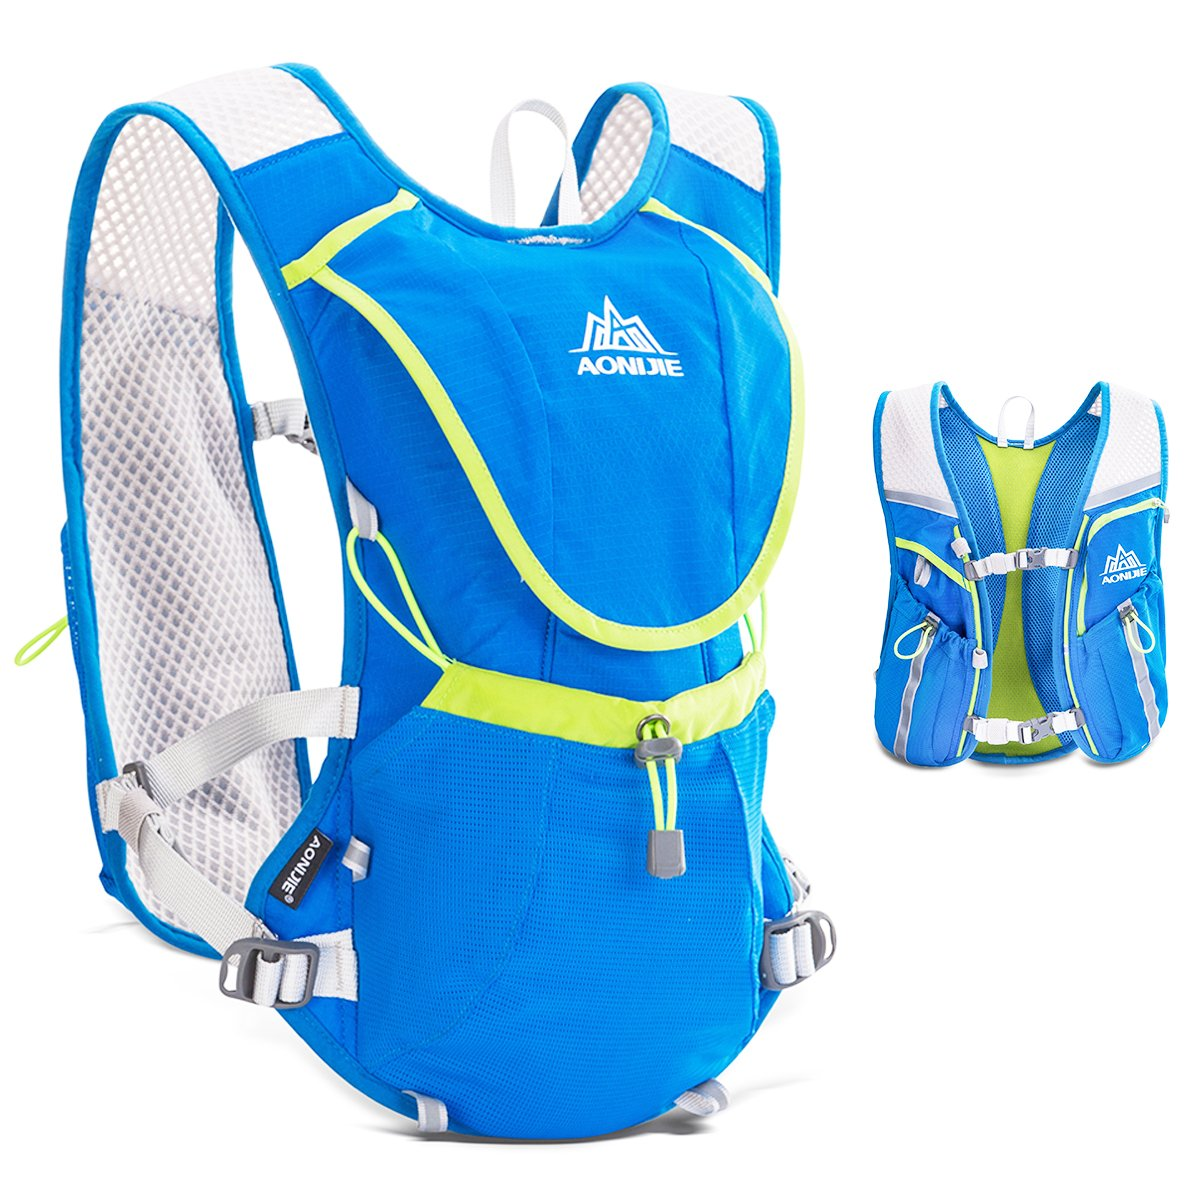 TRIWONDER Hydration Pack Backpack Professional 8L Outdoors Mochilas Trail Marathoner Running Race Cycling Hydration Vest (Blue - Only Vest)